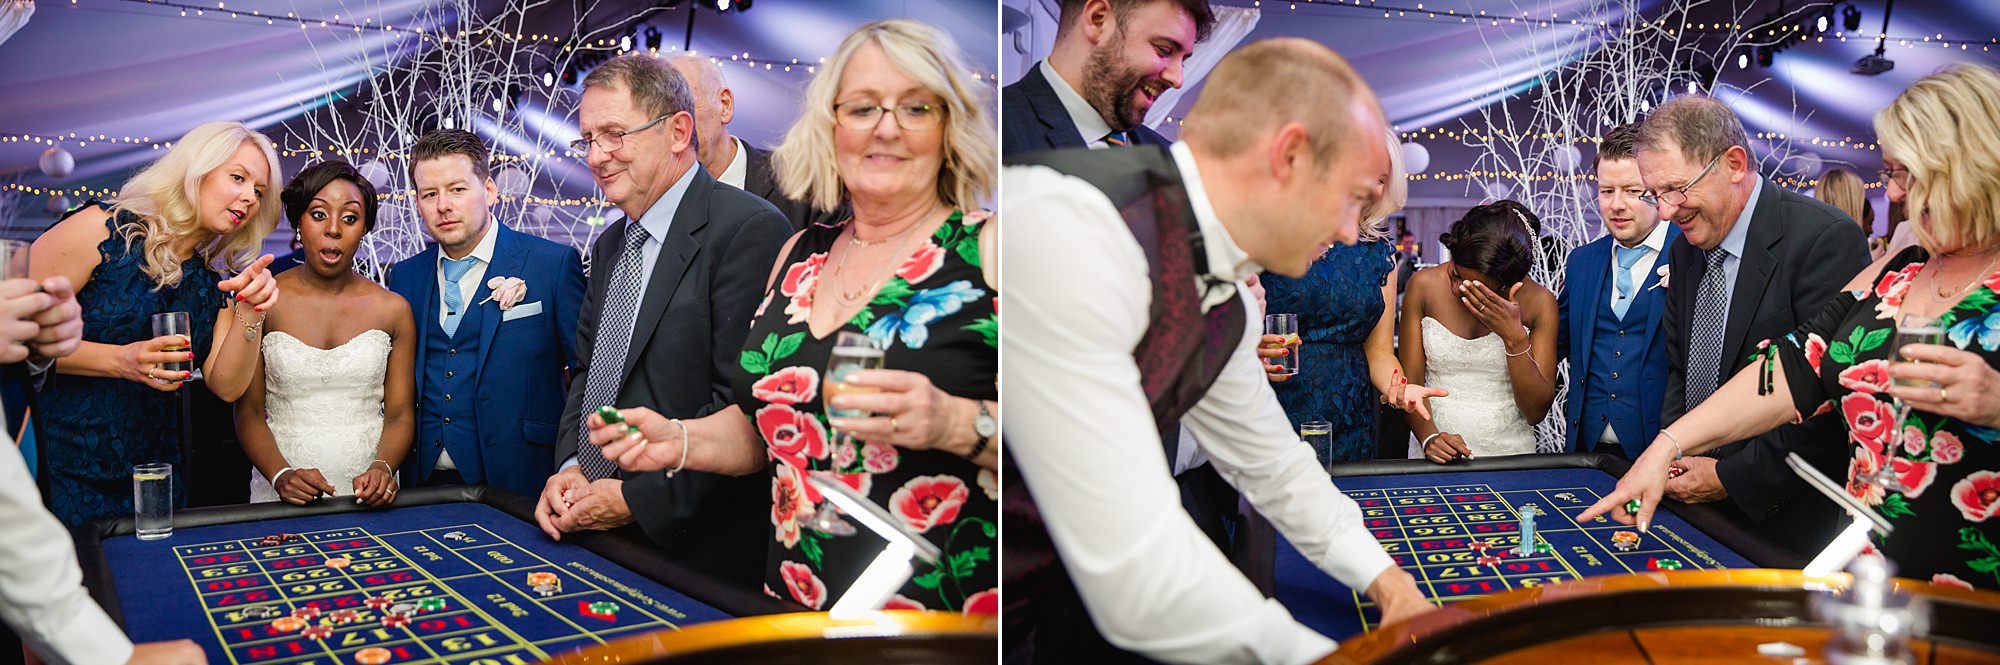 Bank of England Sports Centre wedding bride's reaction at roulette table